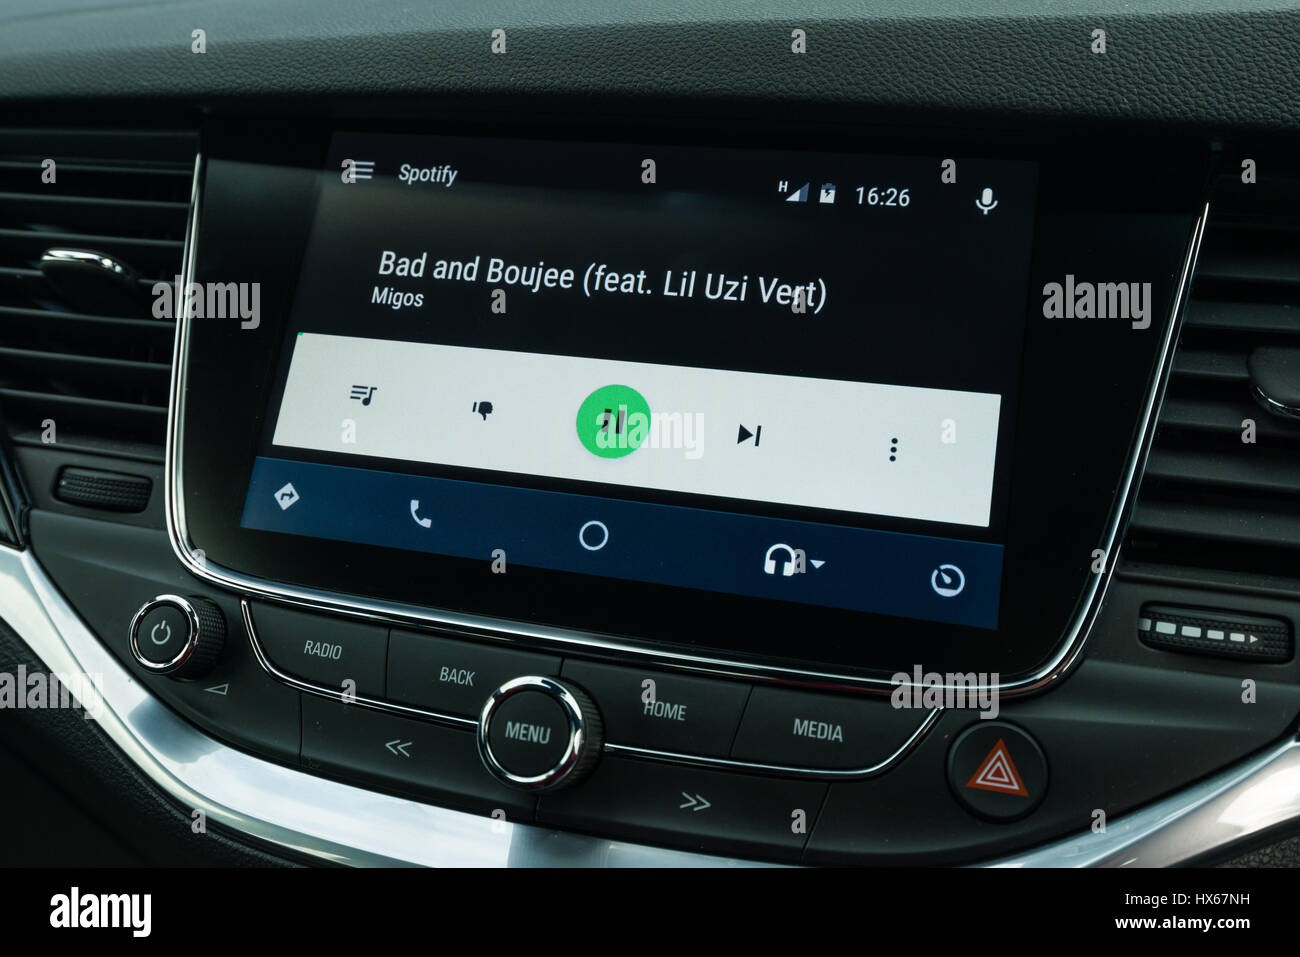 Android Auto Car Vehicle Navigation Interface Showing Spotify Music